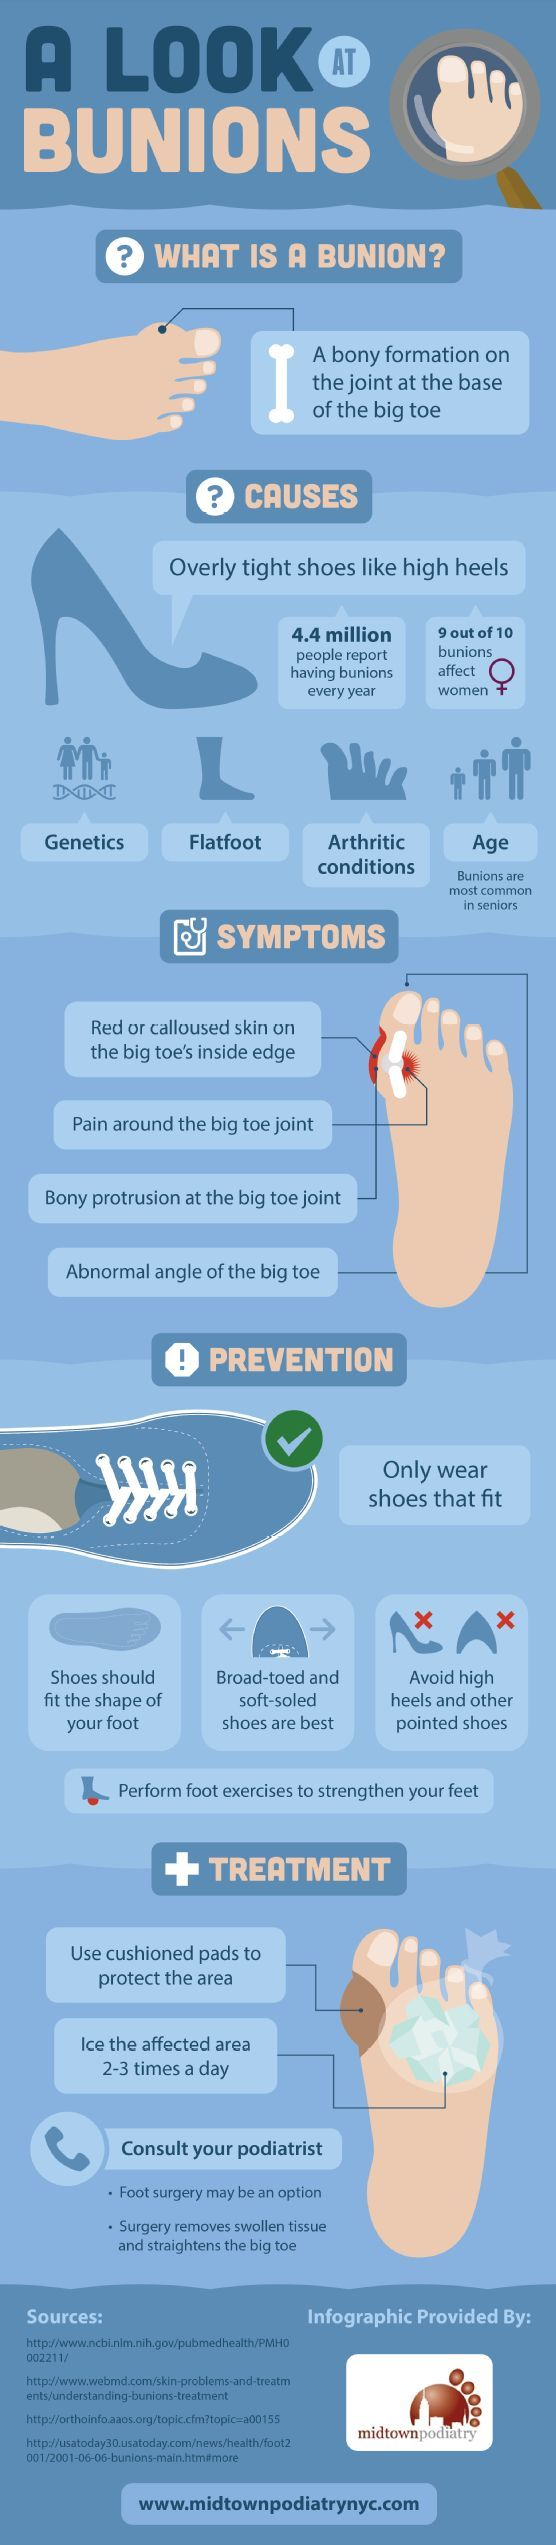 At closer look at #bunions #infographic